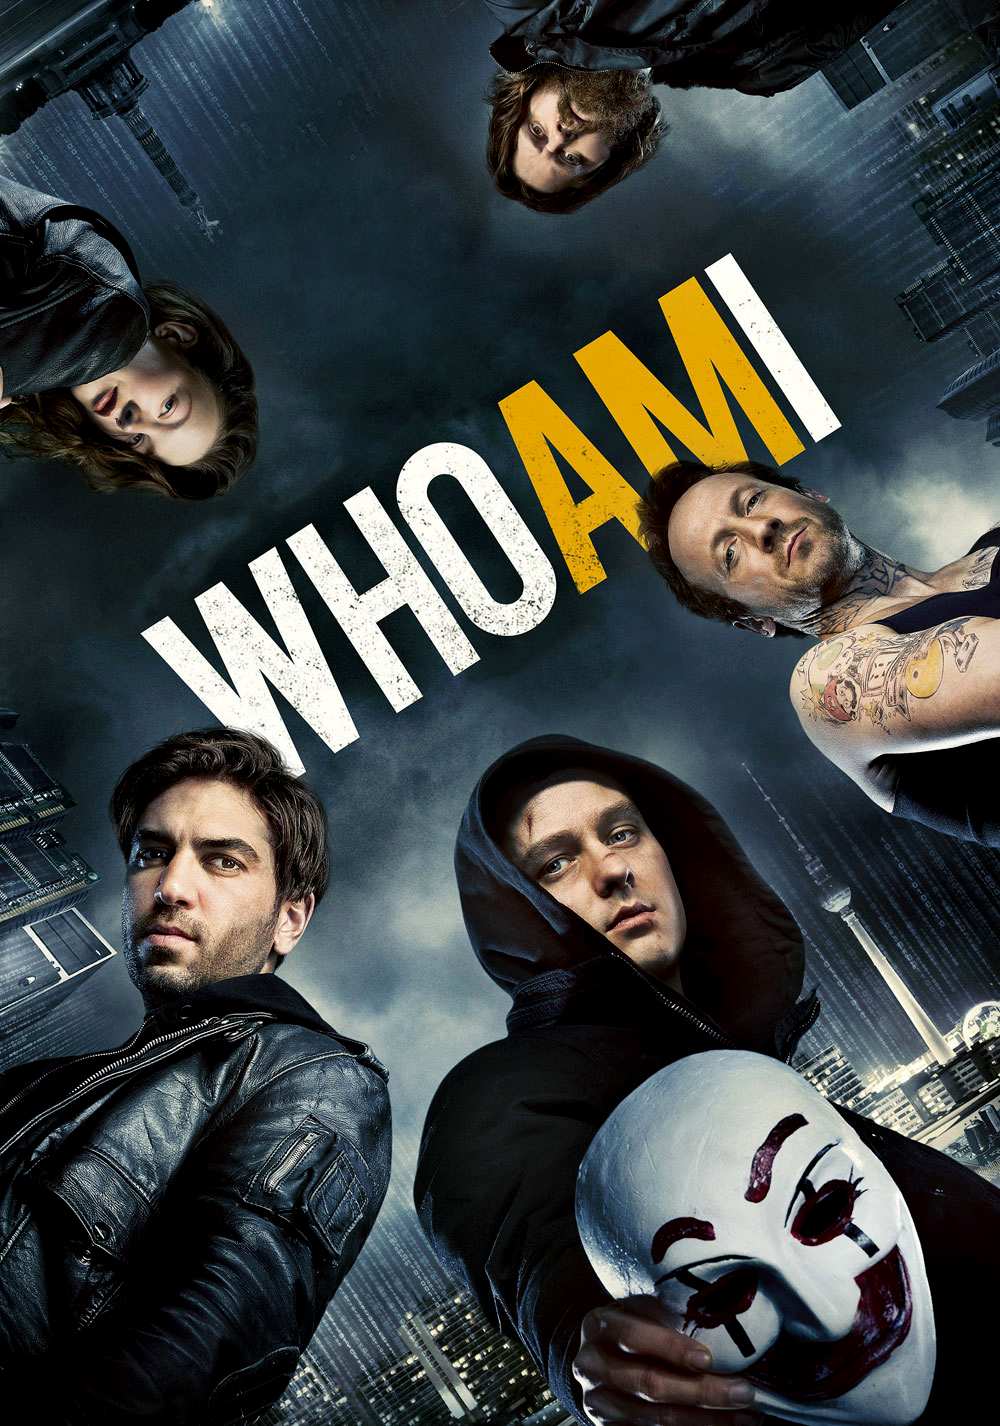 Who Am I  (2014) BDRip 1080p AC3/DTS 5.1 Dual Audio Sub. Esp